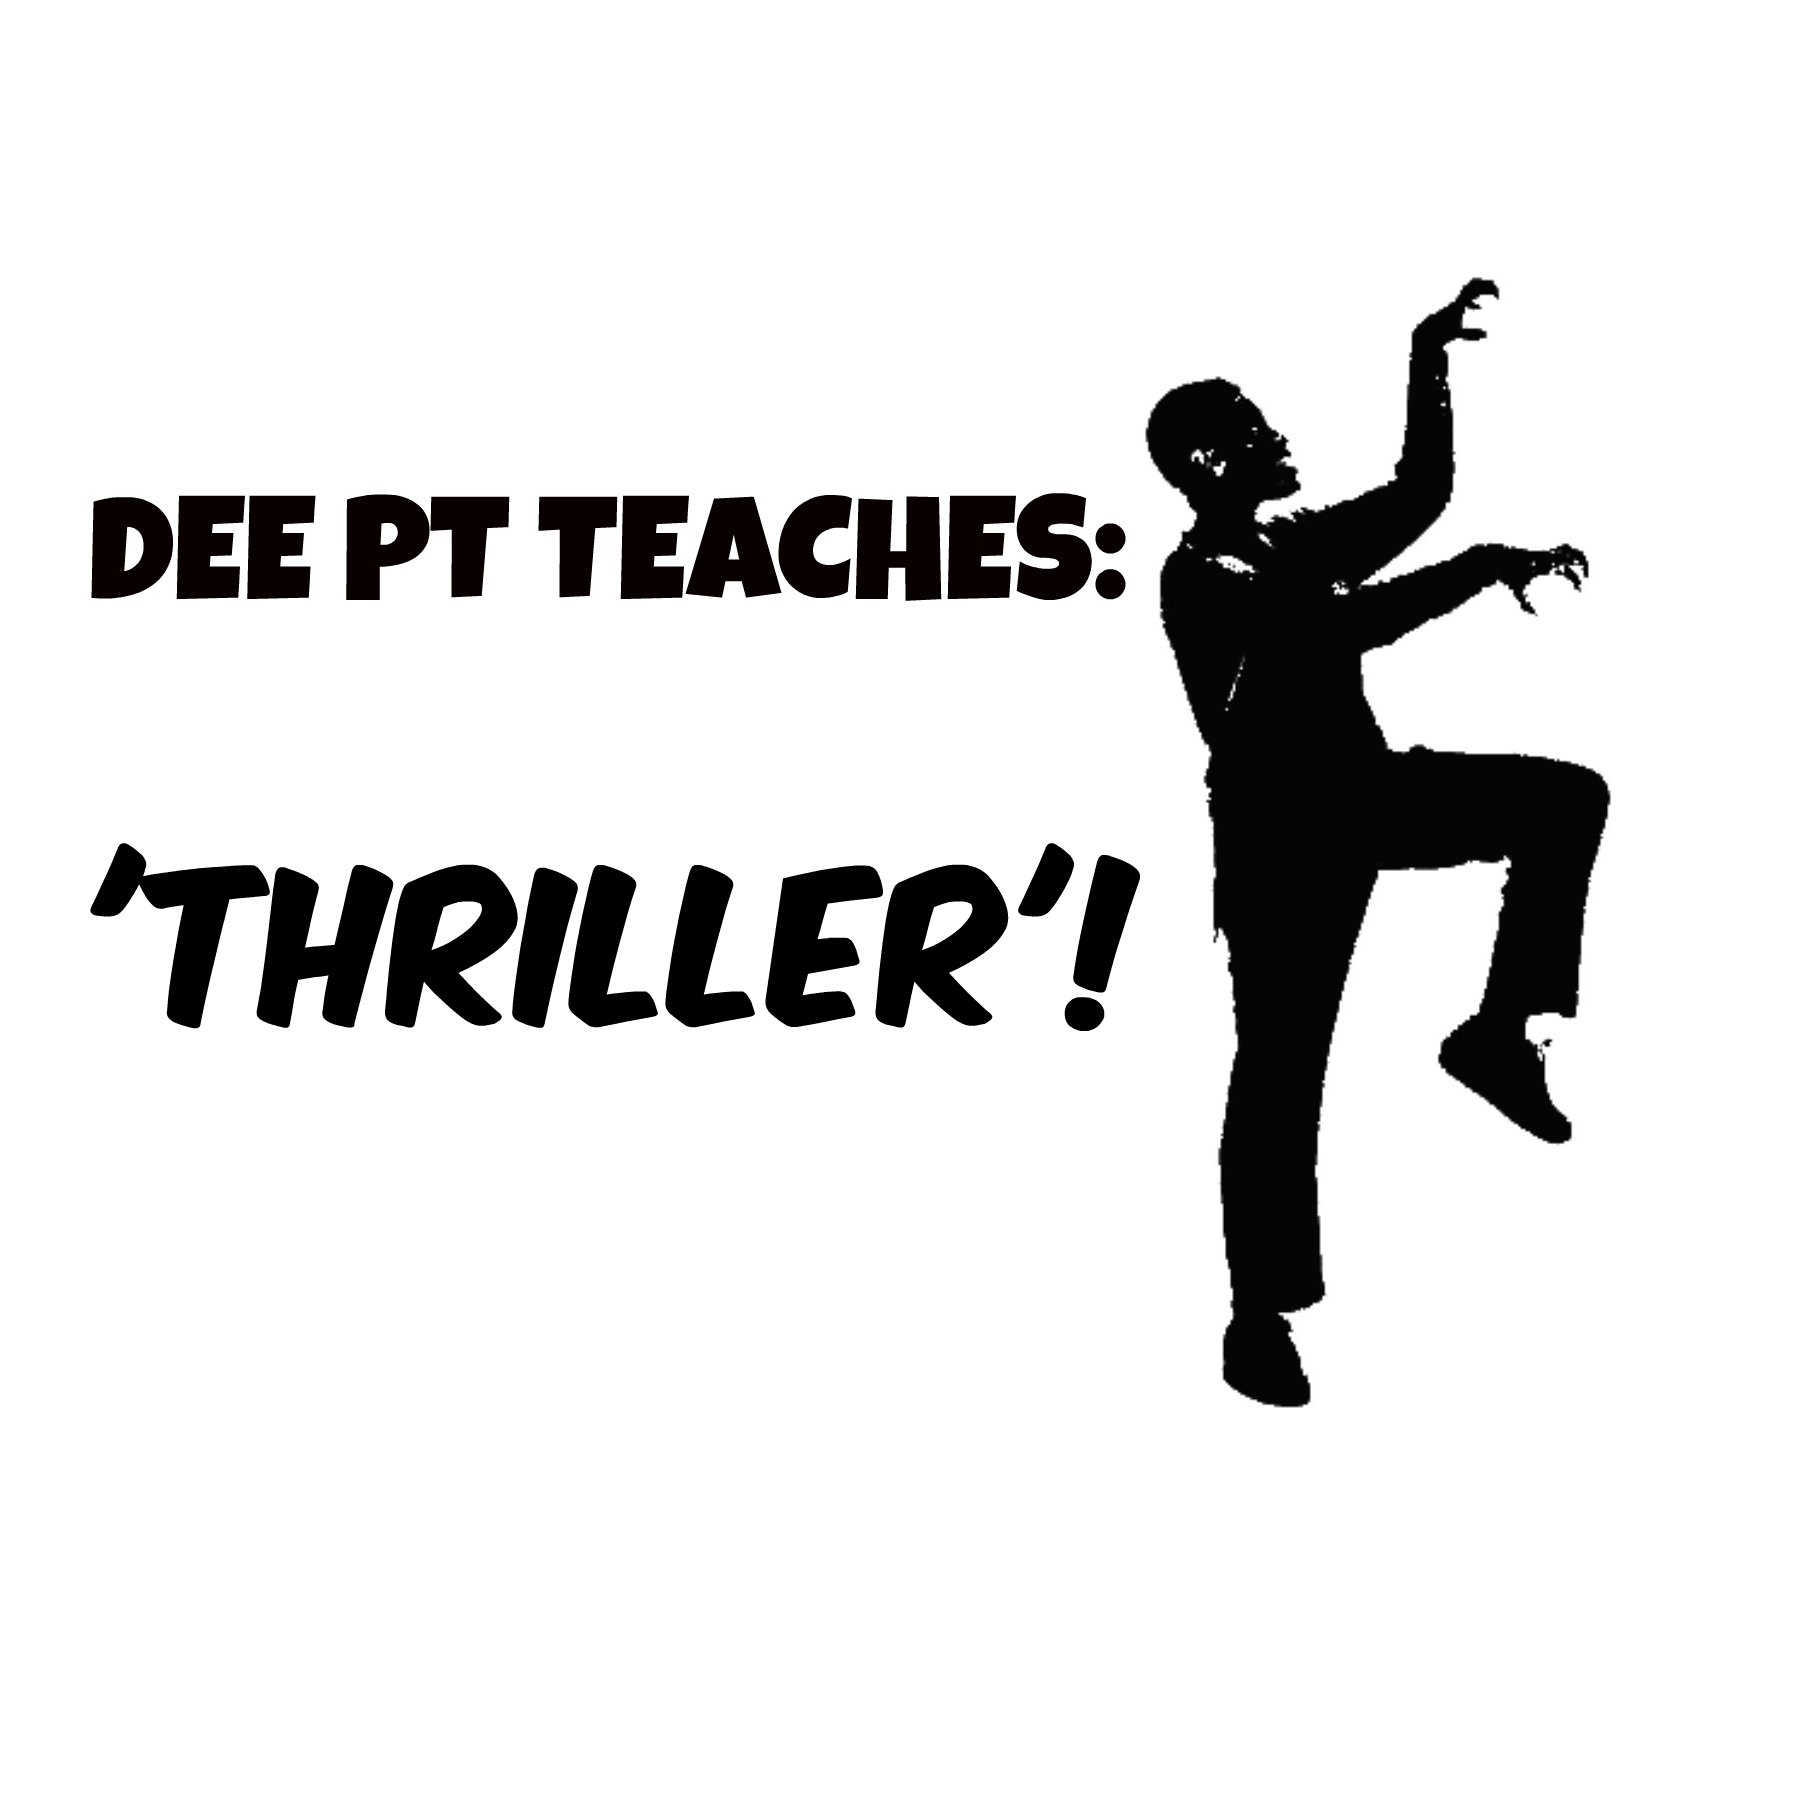 Learn the Dance from THRILLER!